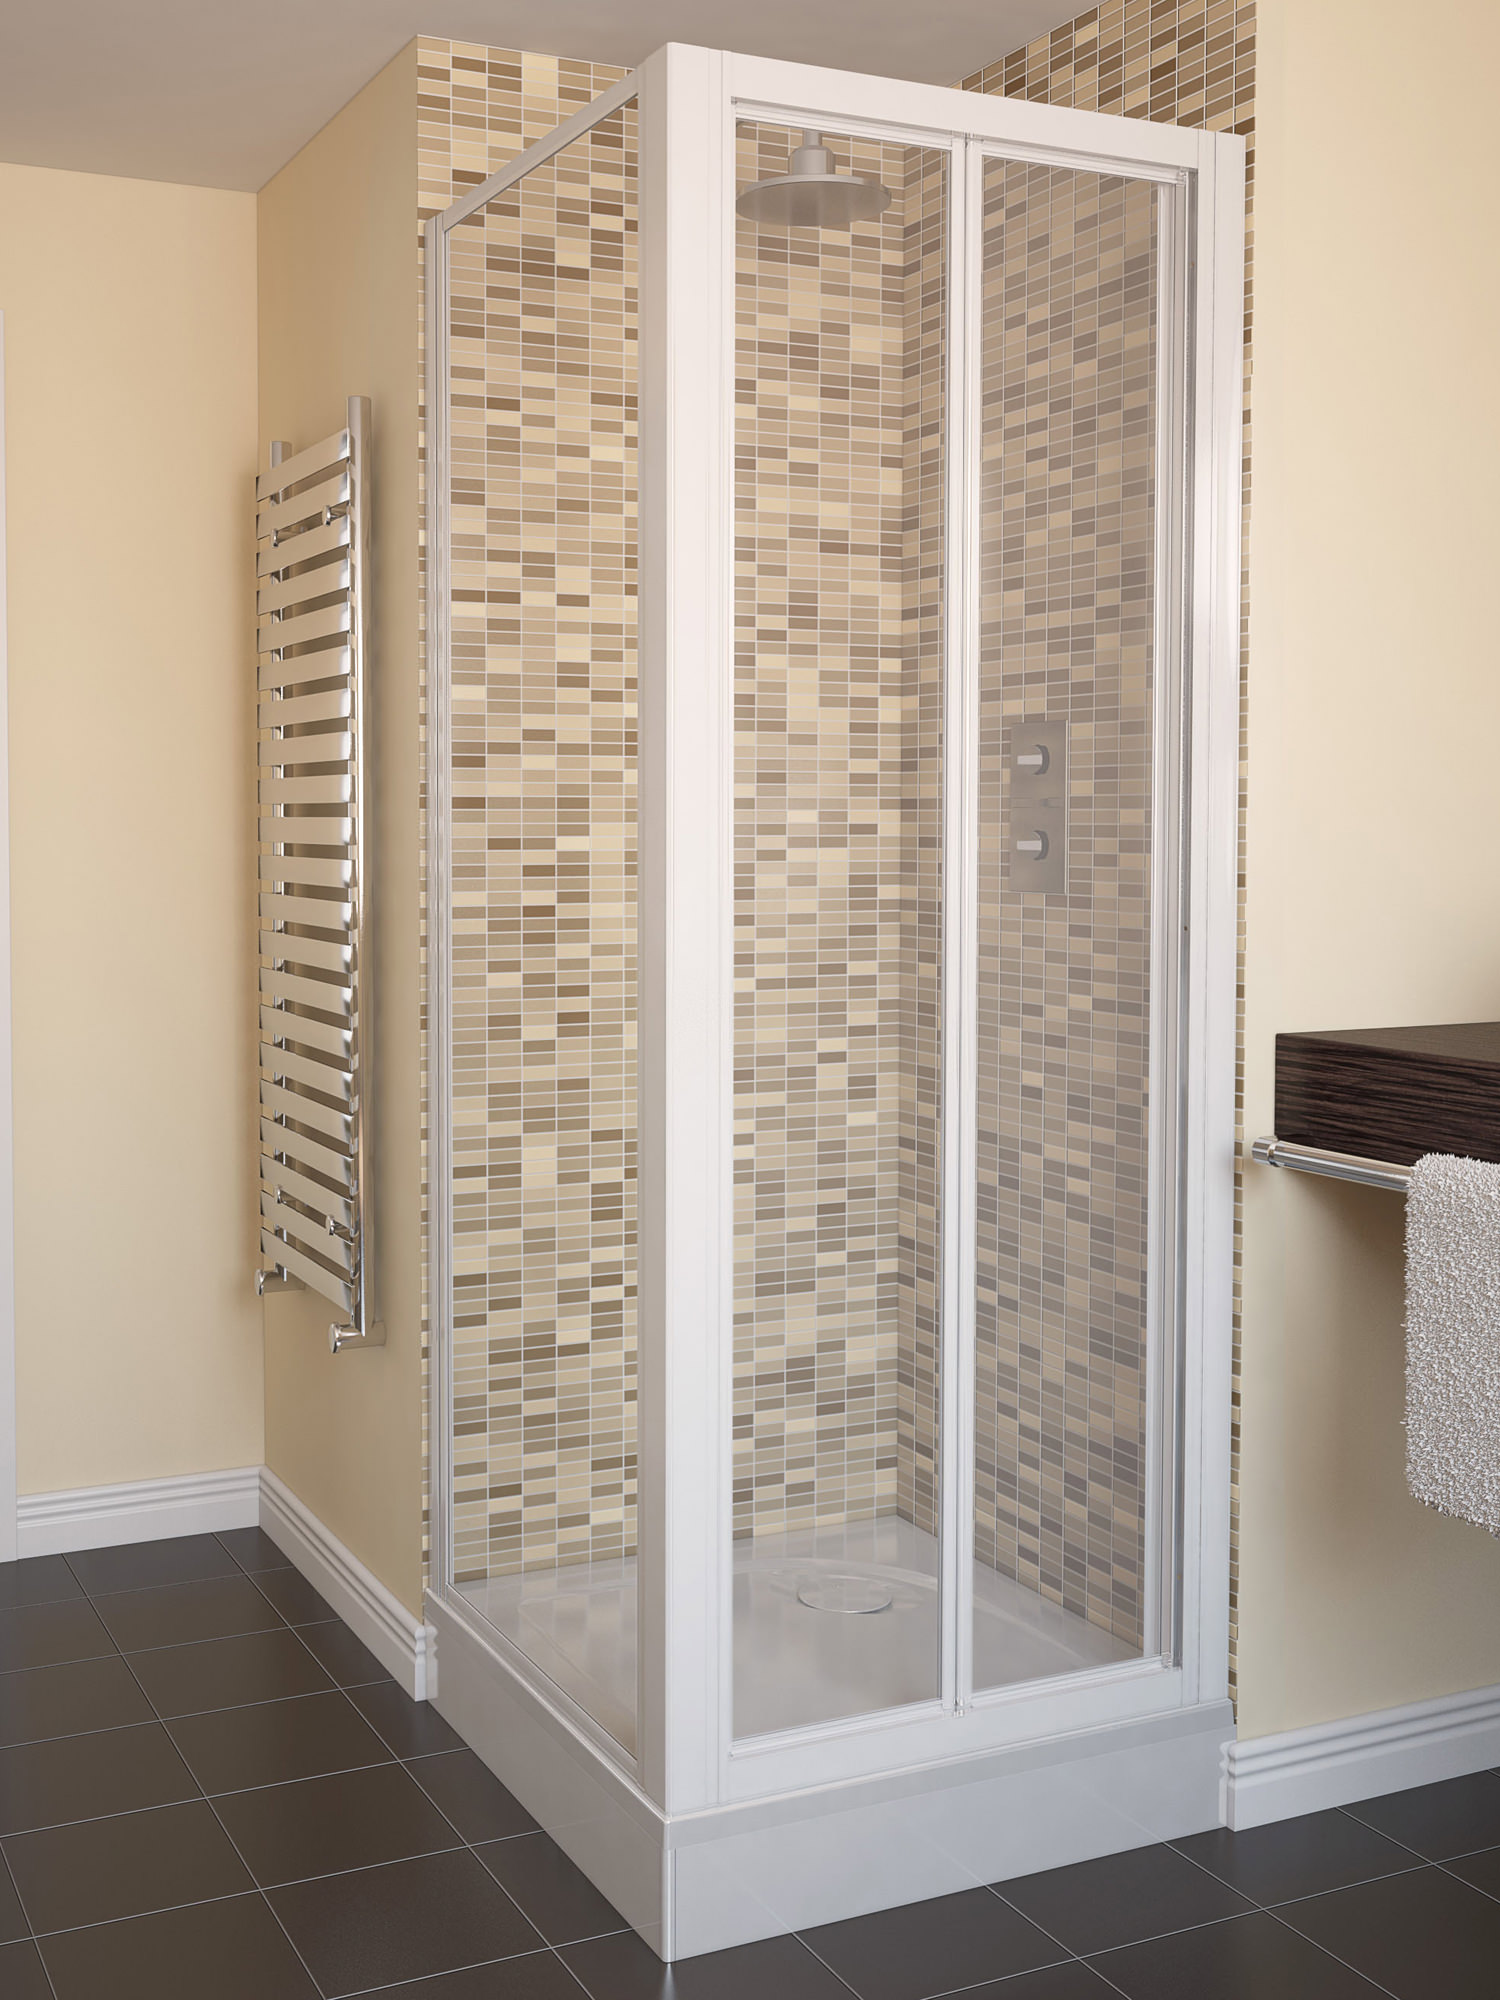 Bi Fold Shower Doors | Sizes 700 800 900 and 1000mm now available